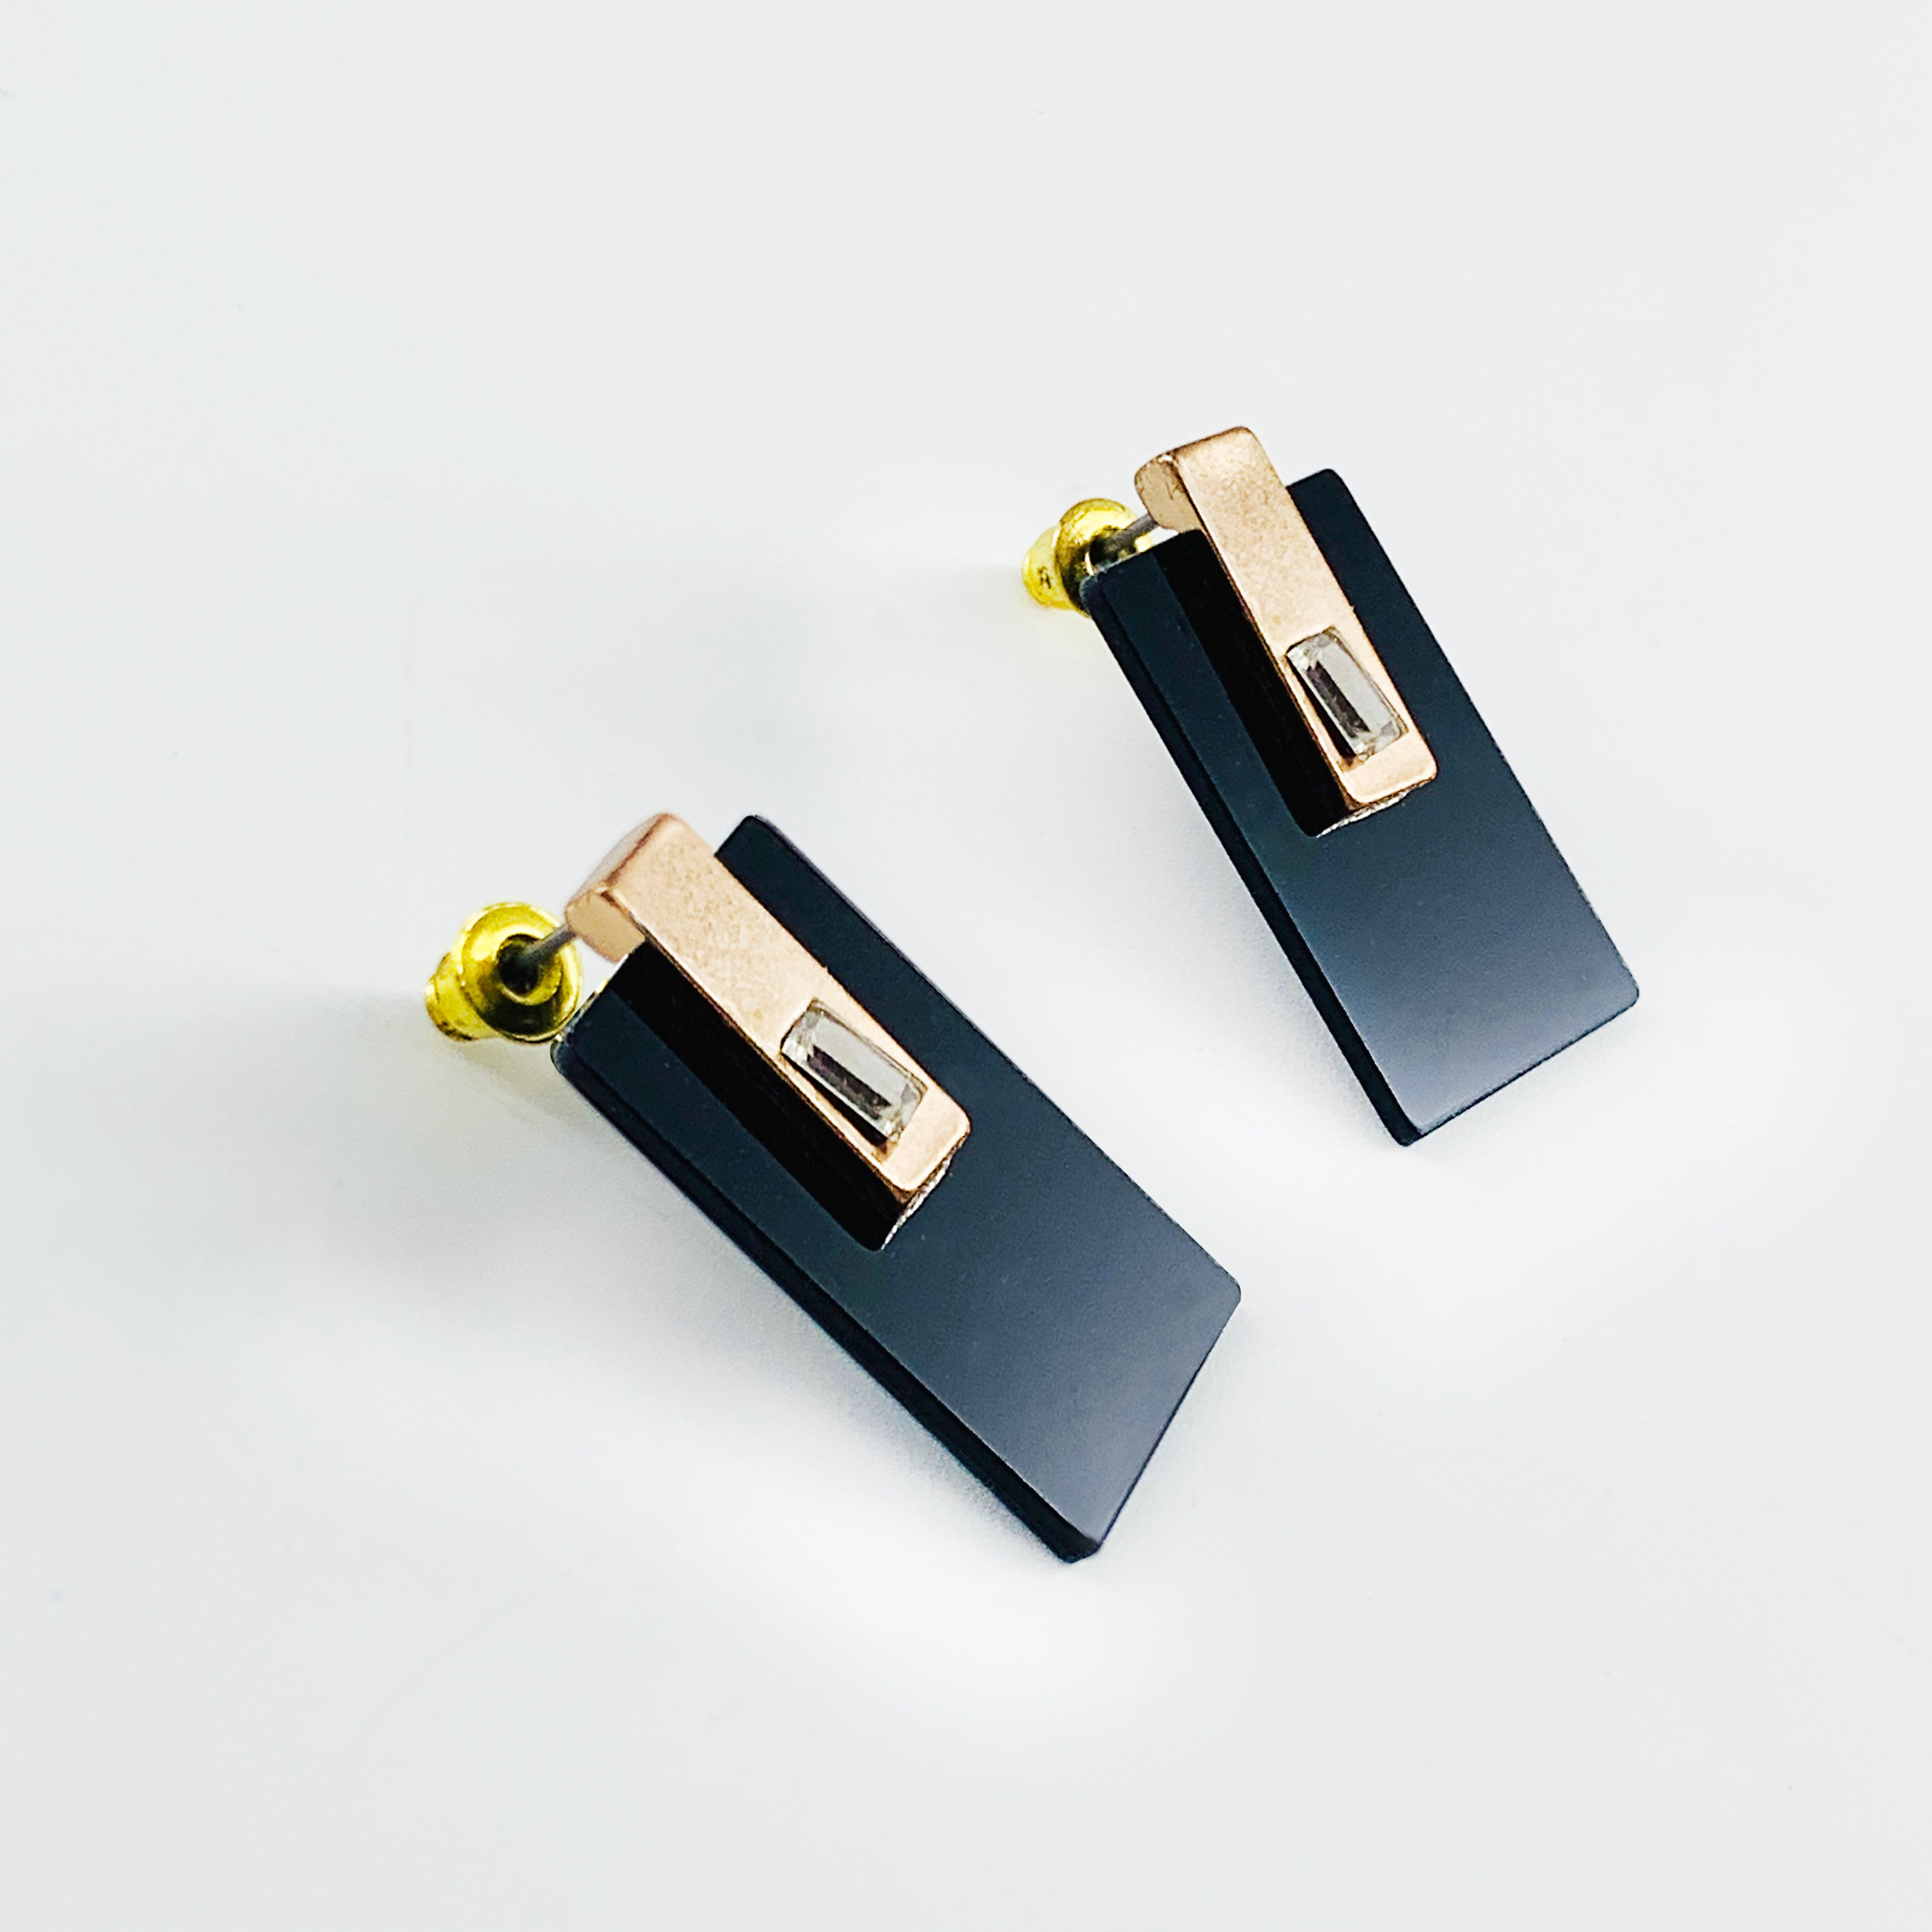 Black acrylic earrings with gold accent